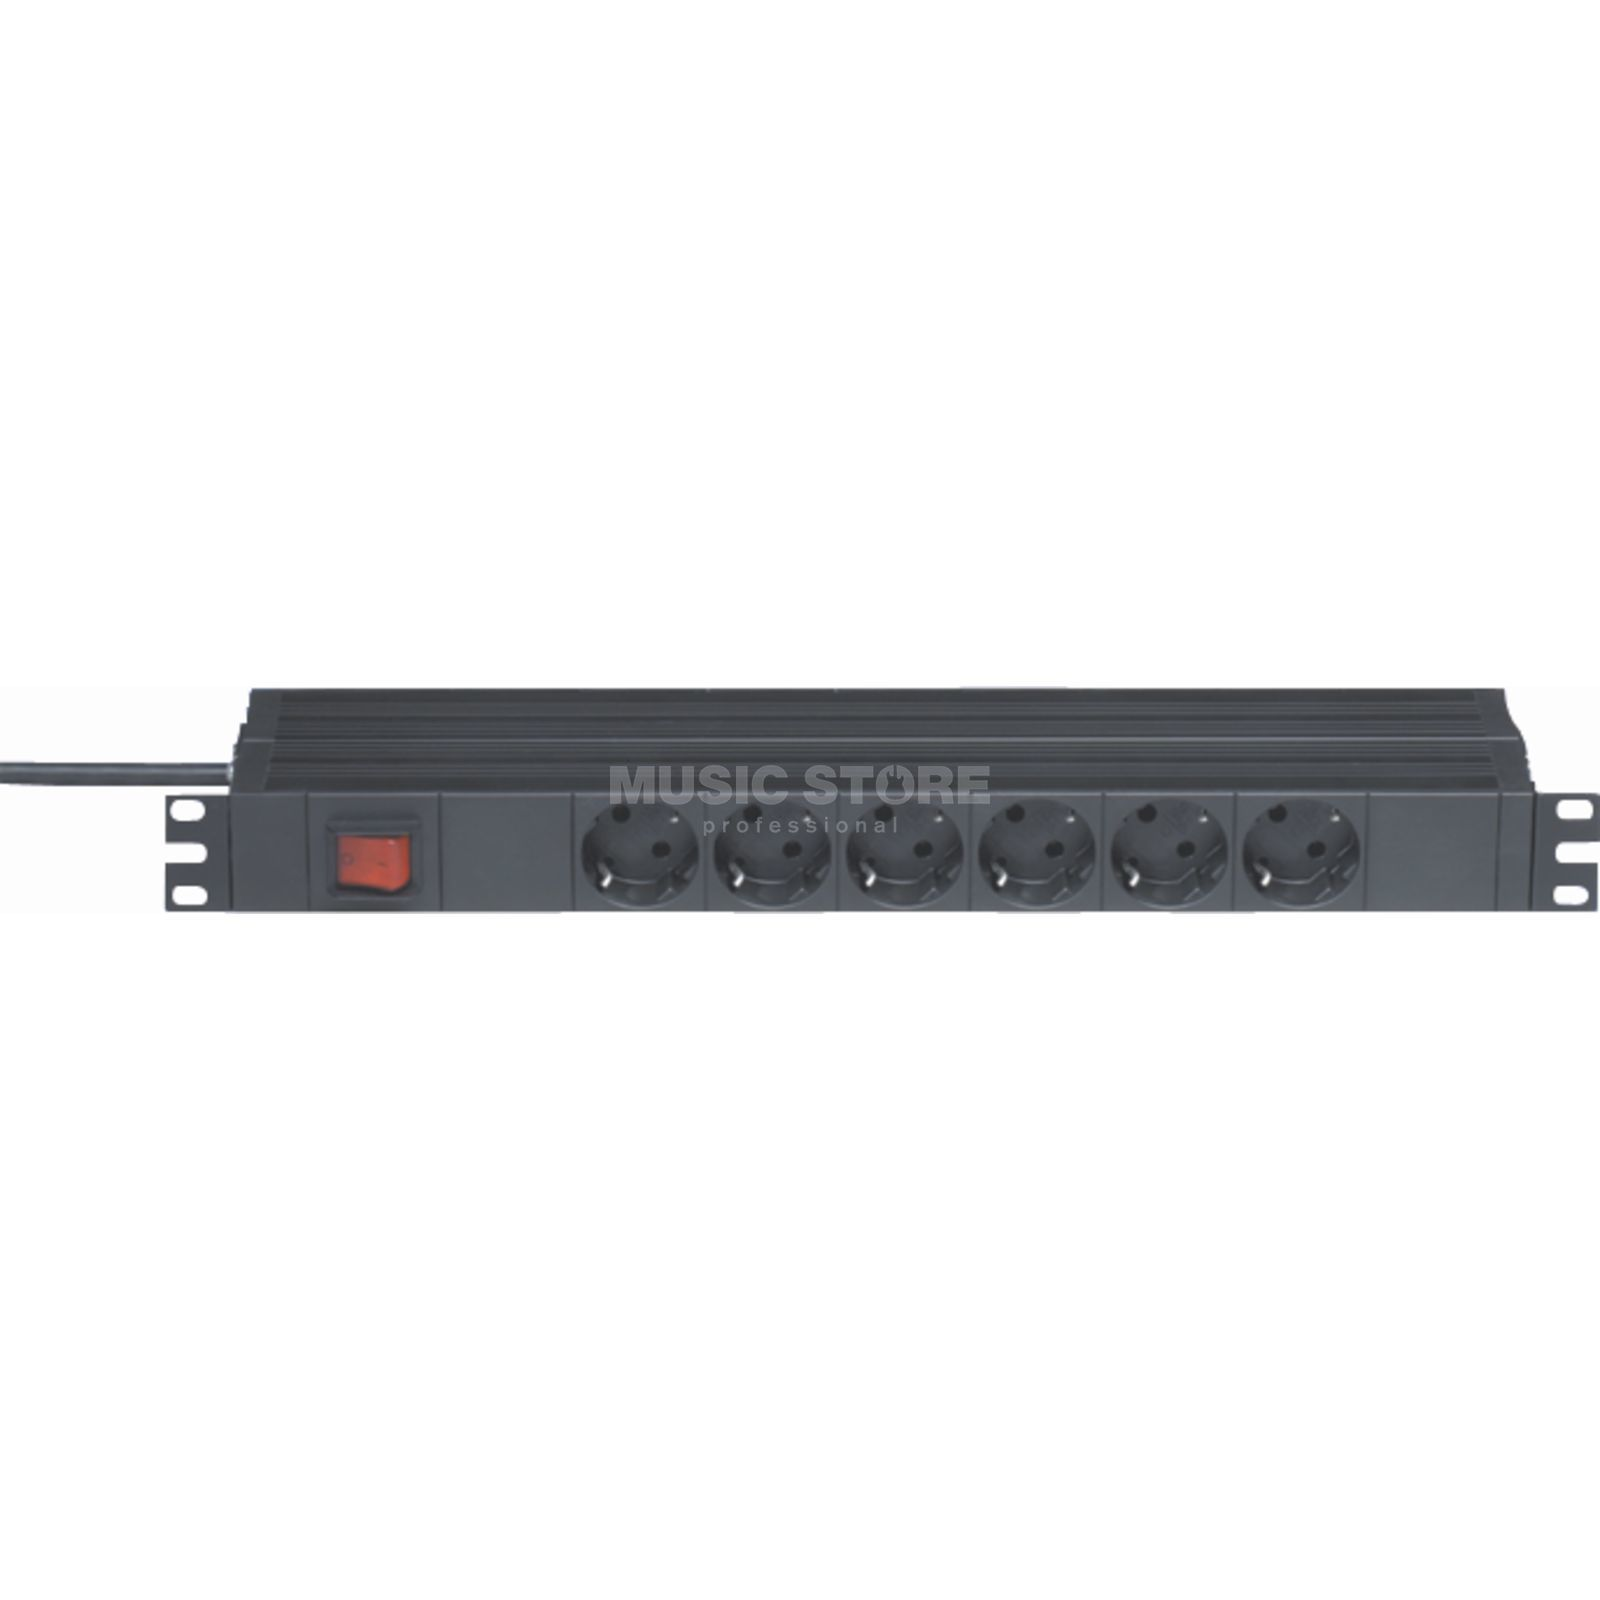 Kopp SL6 Multiple Socket Outlet with switcher Produktbillede